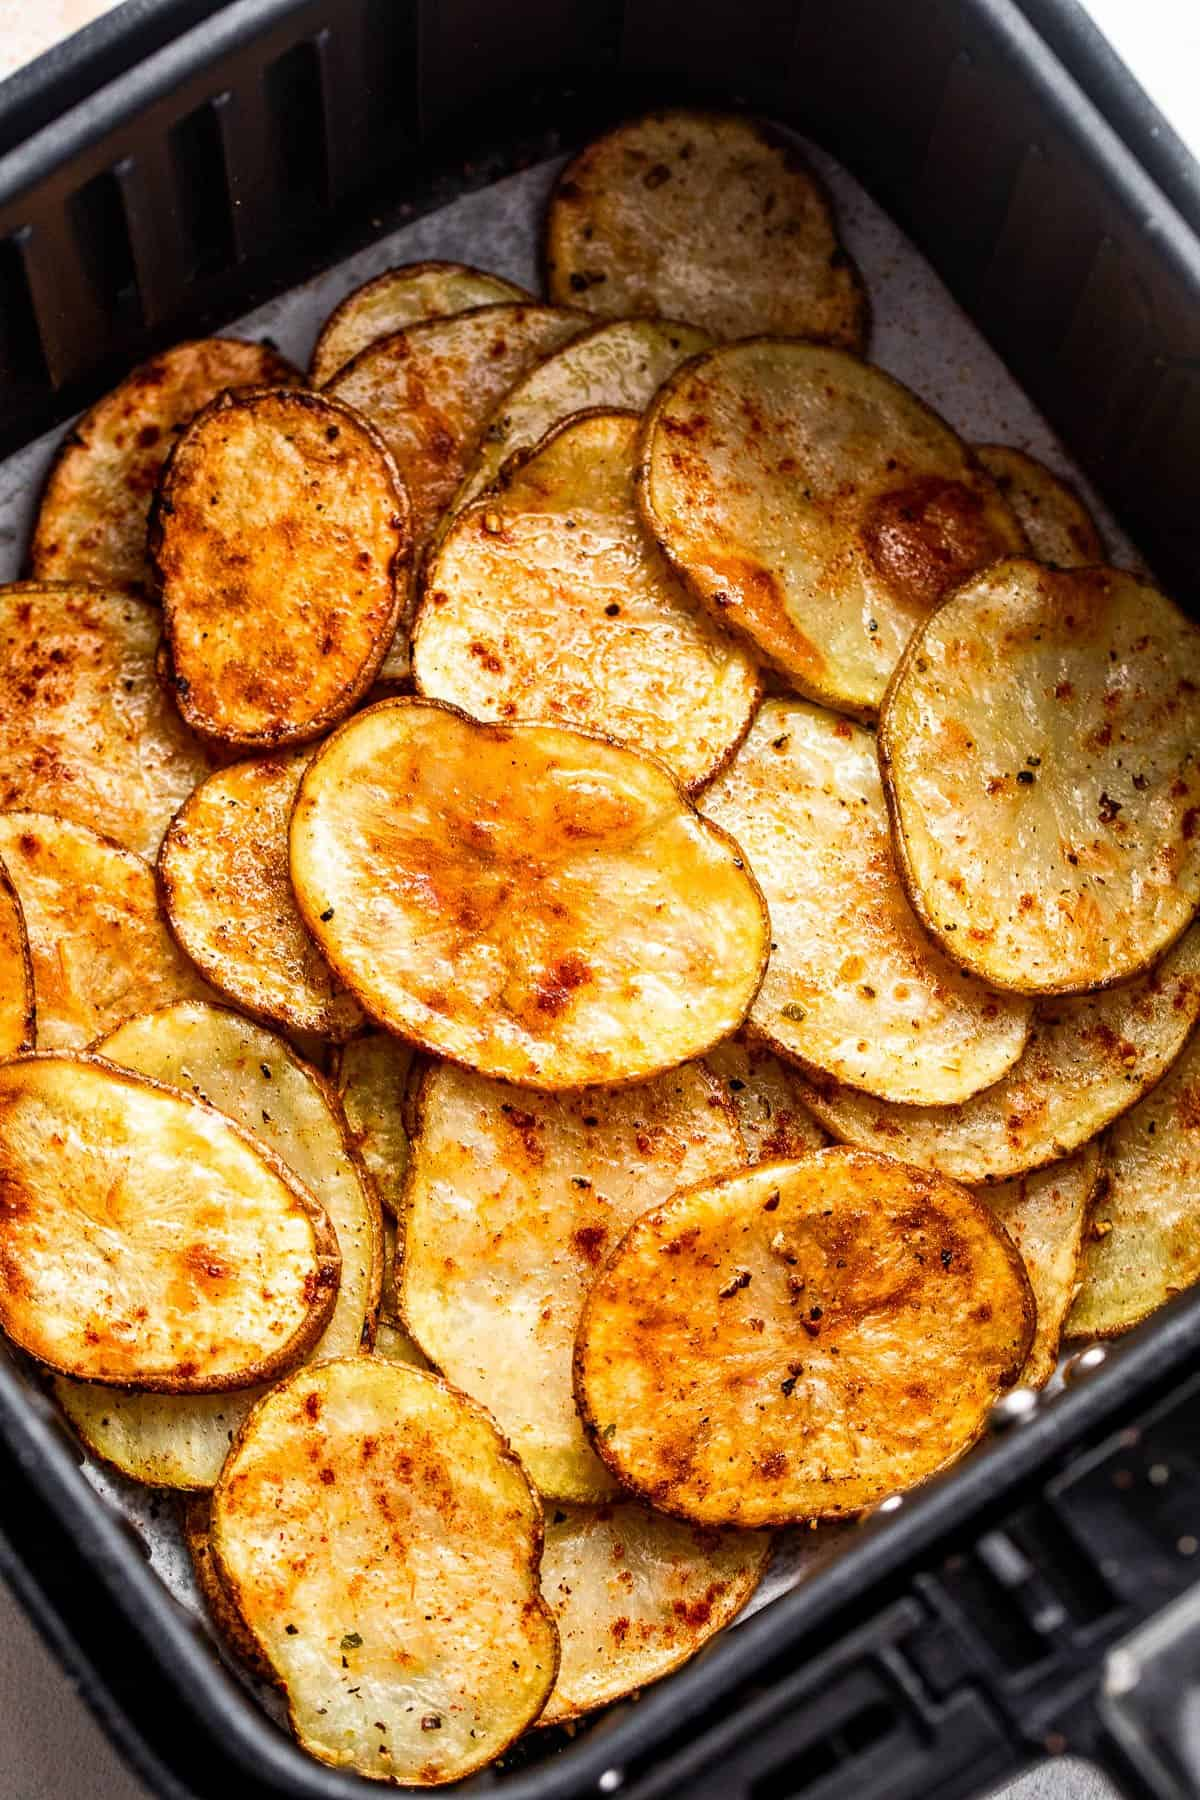 baked potato chips in an air fryer basket